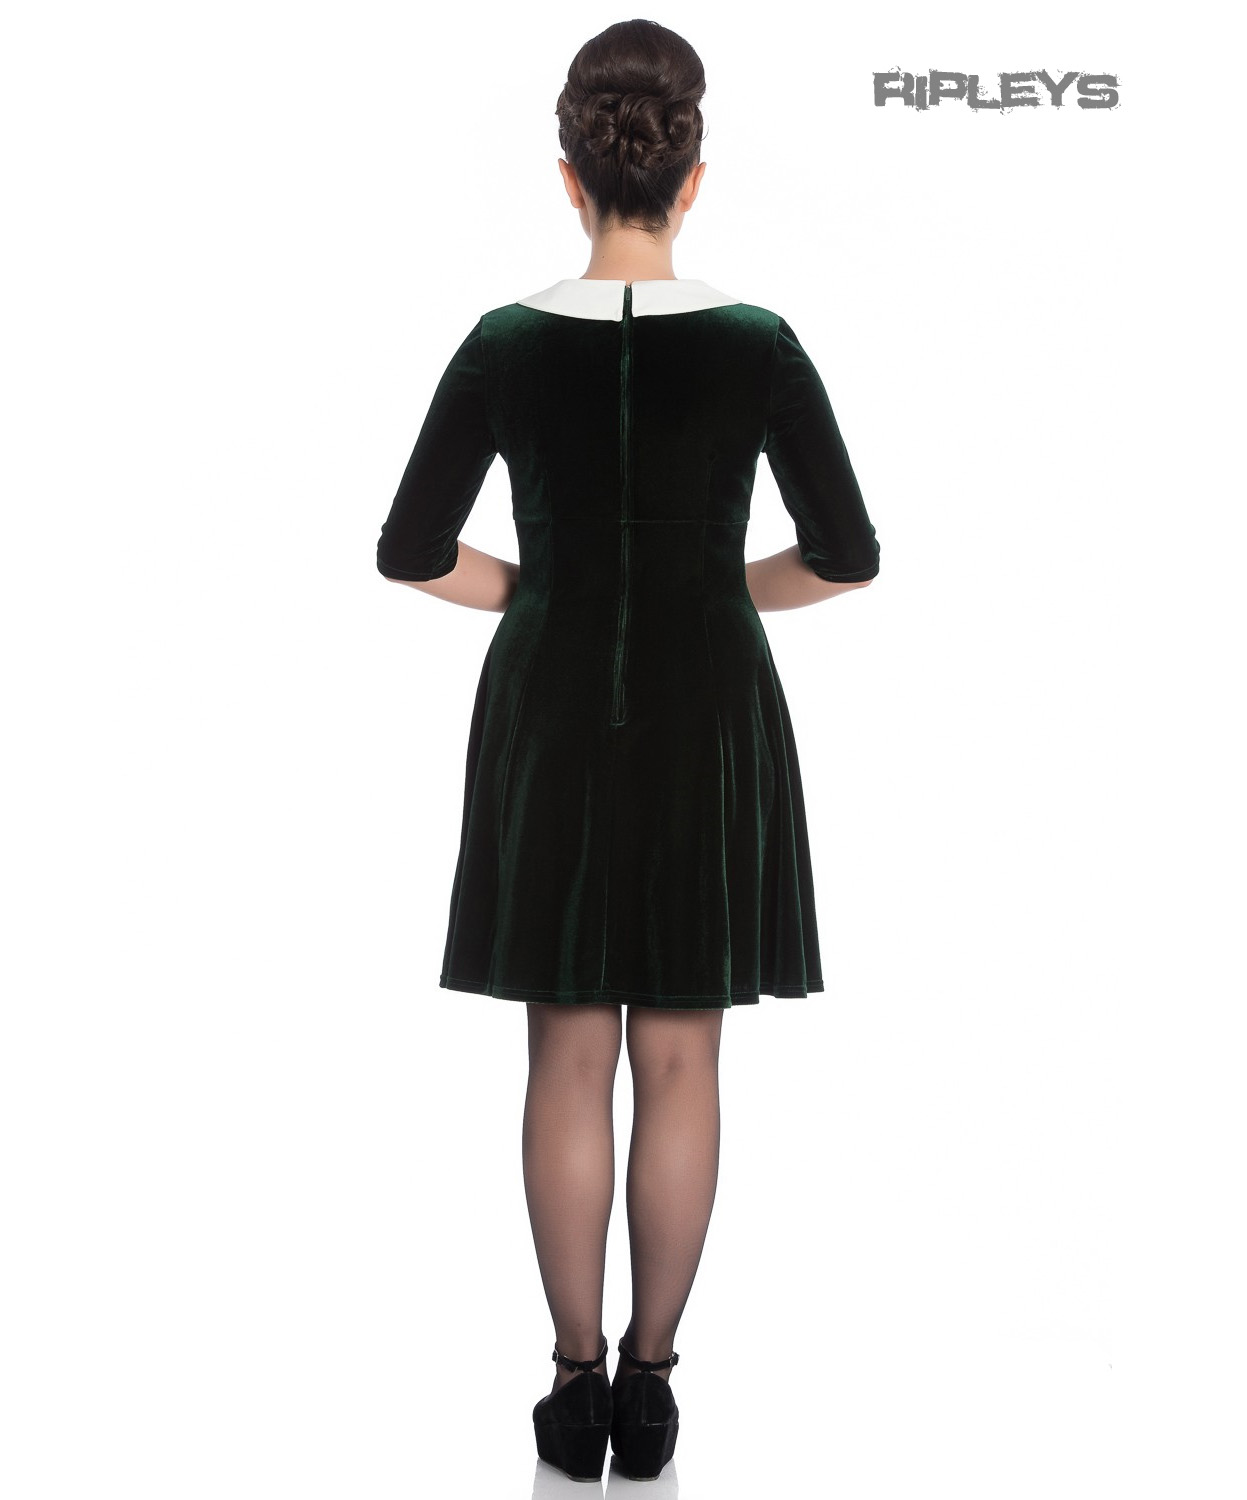 Hell-Bunny-Mini-Skater-Dress-Festive-Christmas-MERRILY-Green-Velvet-All-Sizes thumbnail 4